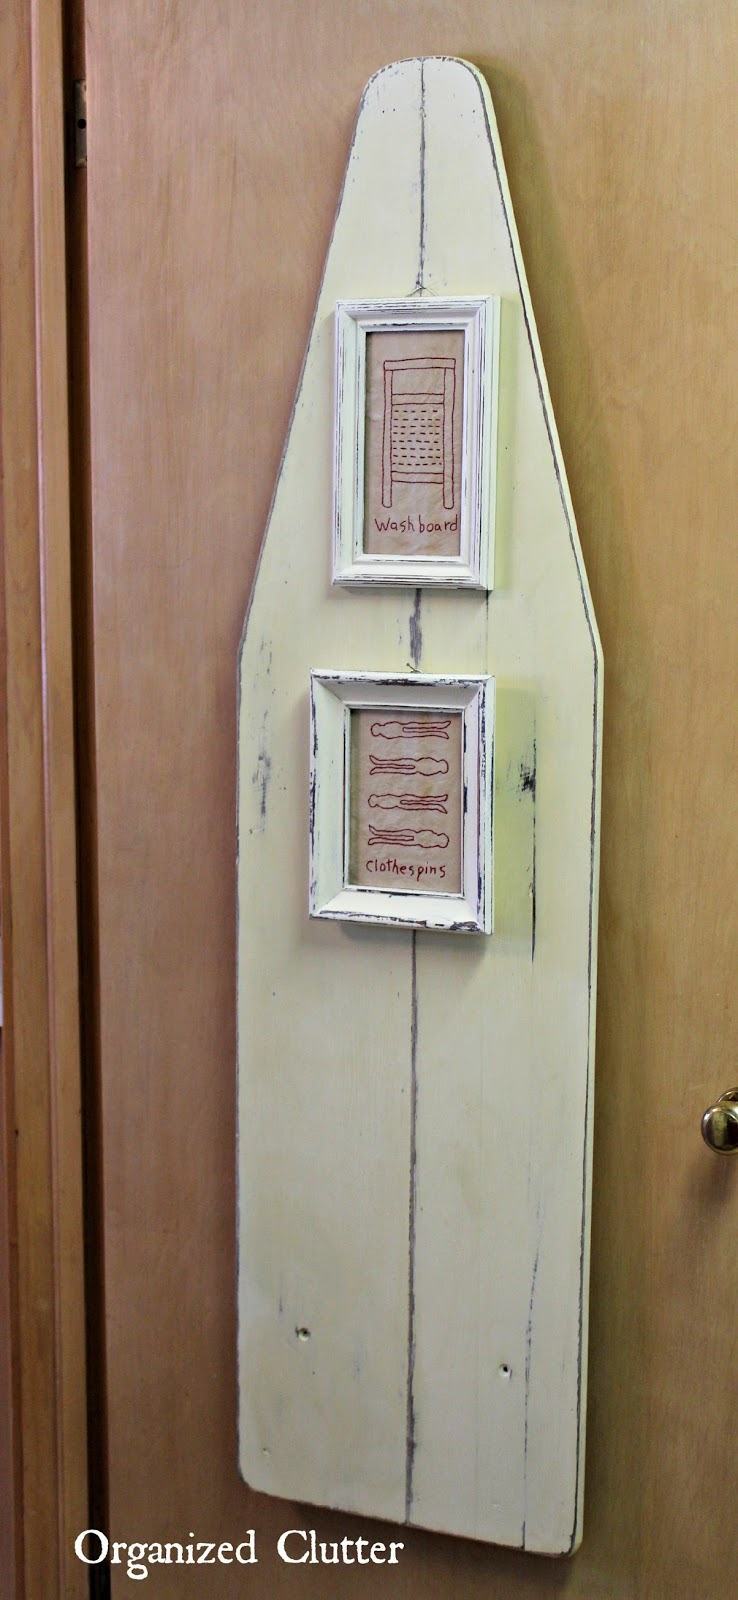 Laundry Room Door Decor - Painted Ironing Board www.organizedclutterqueen.blogspot.com